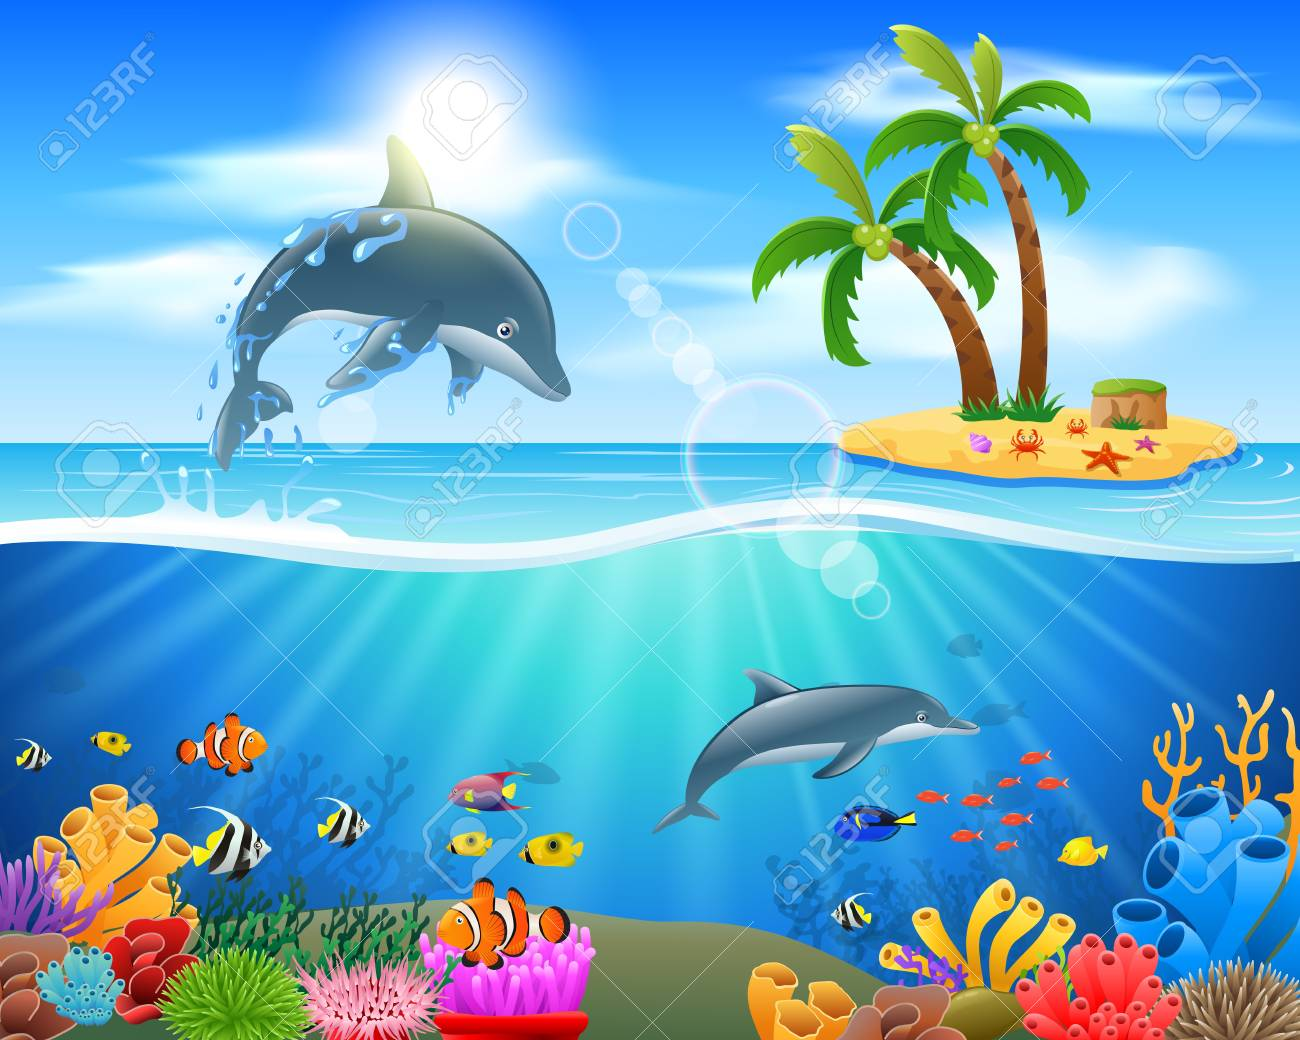 Dolphins clipart under sea. Bottlenose dolphin x free